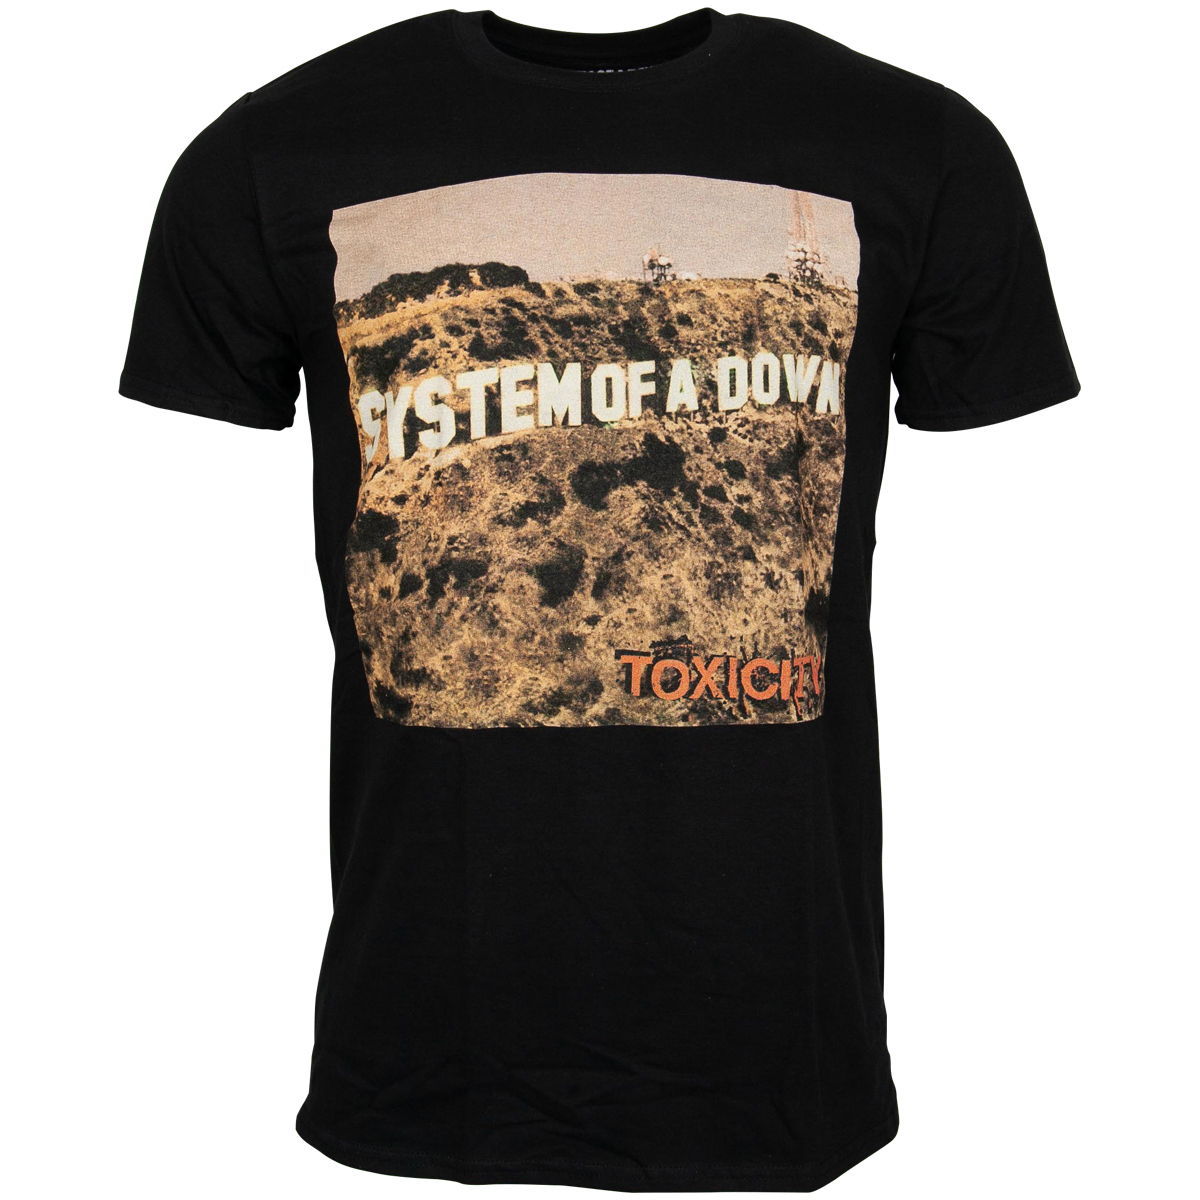 System Of A Down - T-Shirt Toxicity - schwarz